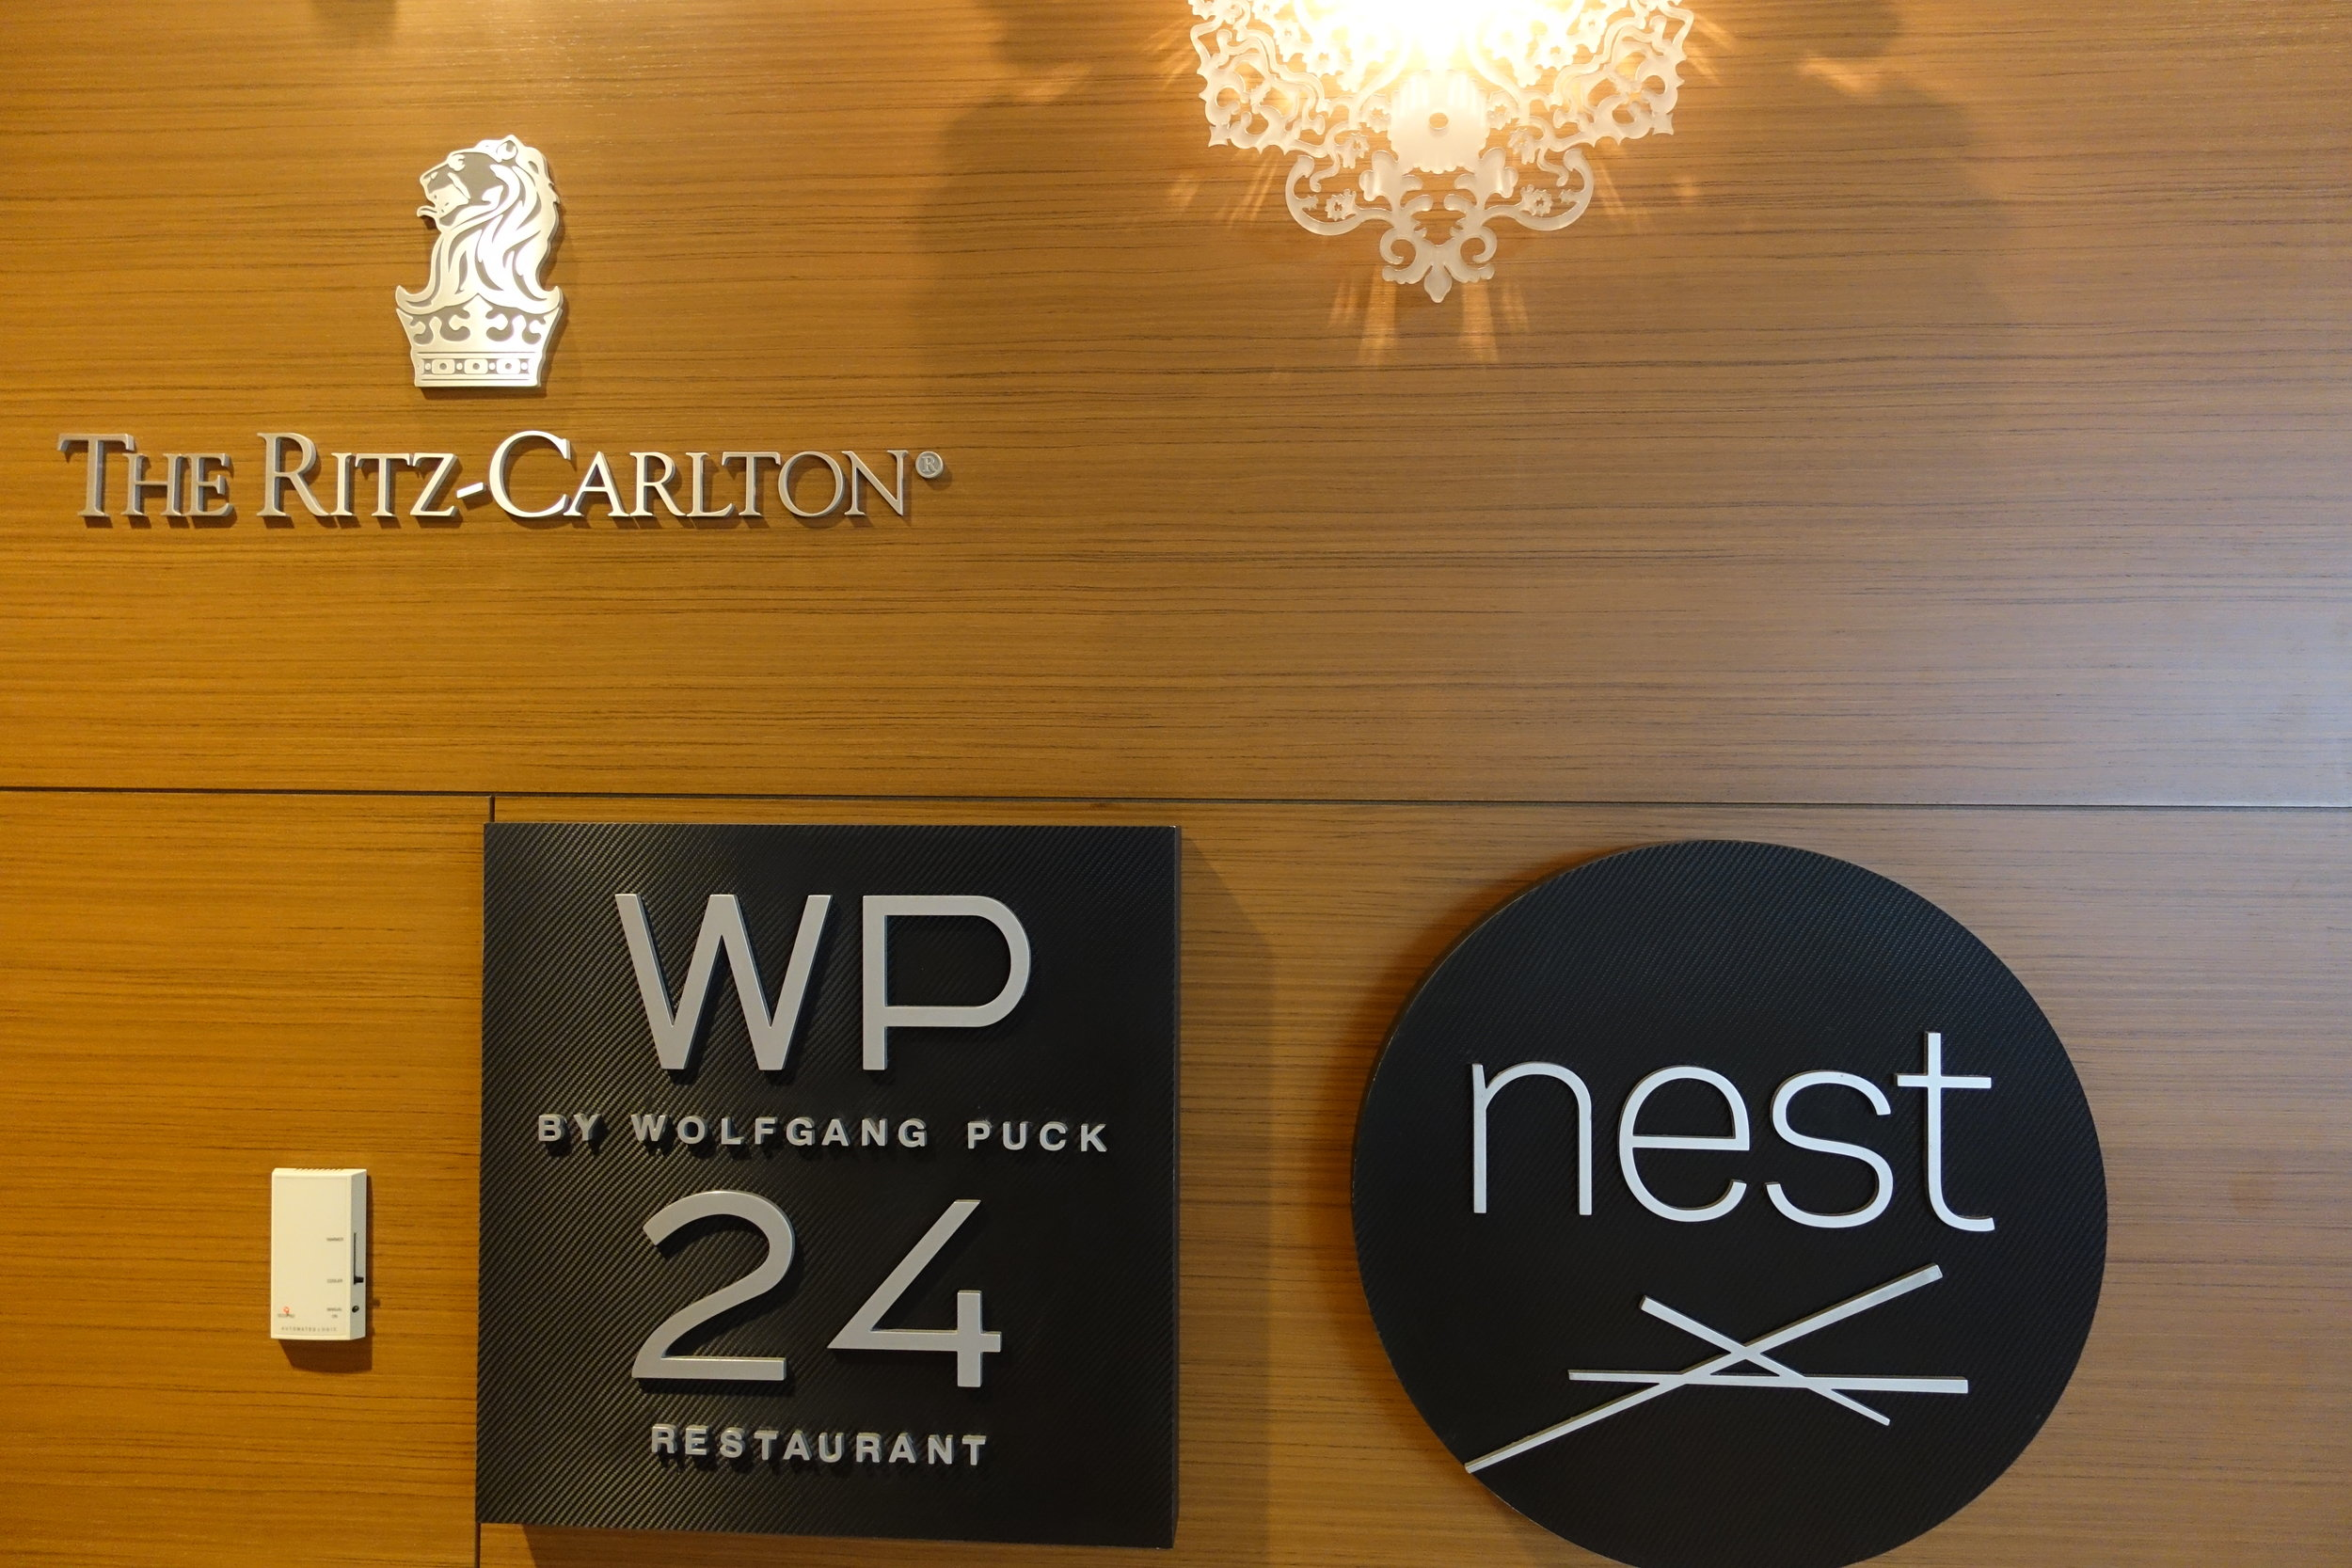 Ritz-Calrton Entrance from the Marriott Marquis